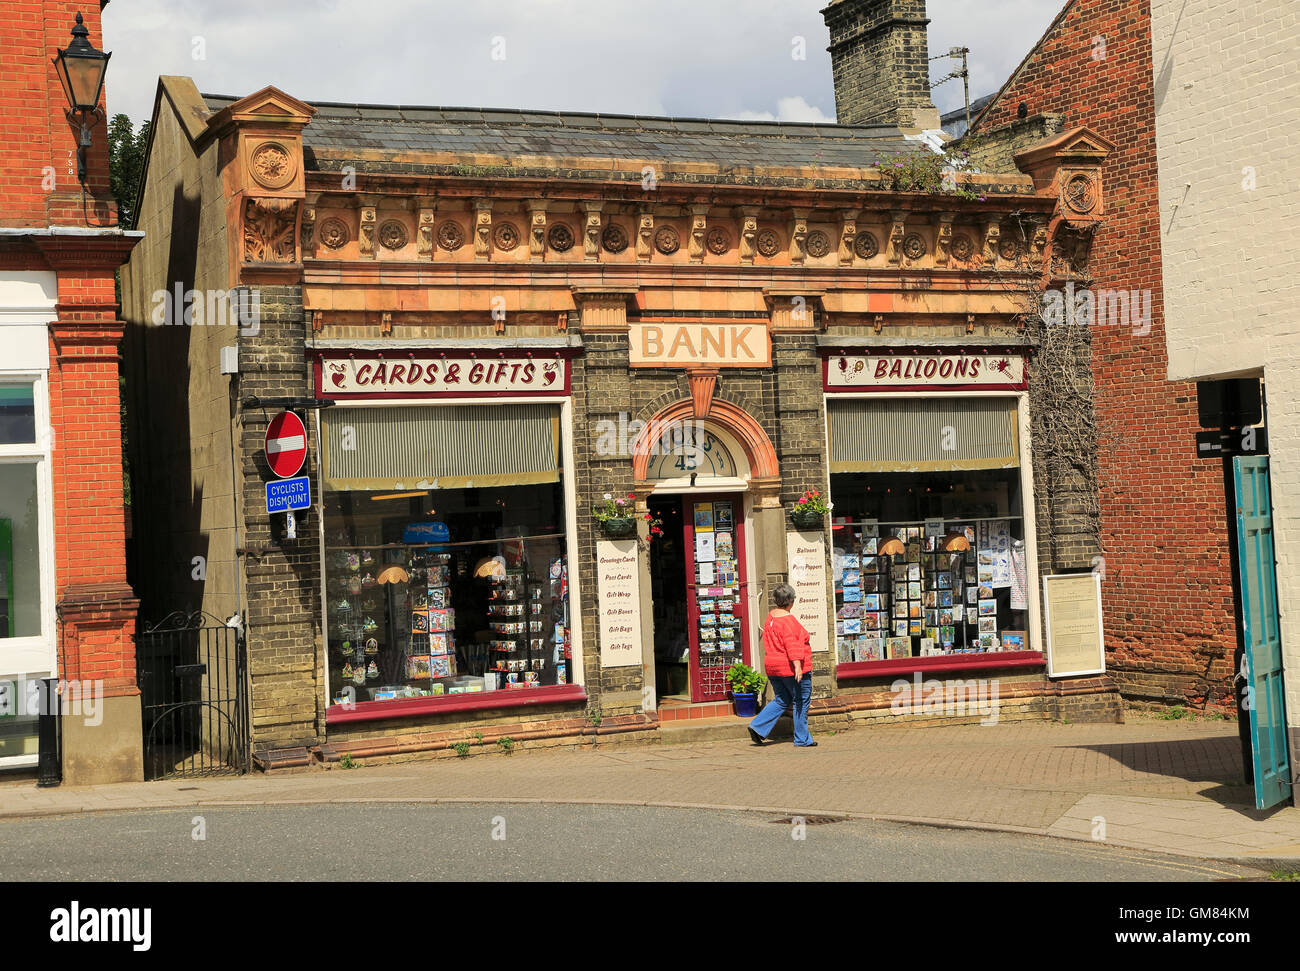 Former bank building converted into shop, Halesworth, Suffolk, England, UK - Stock Image